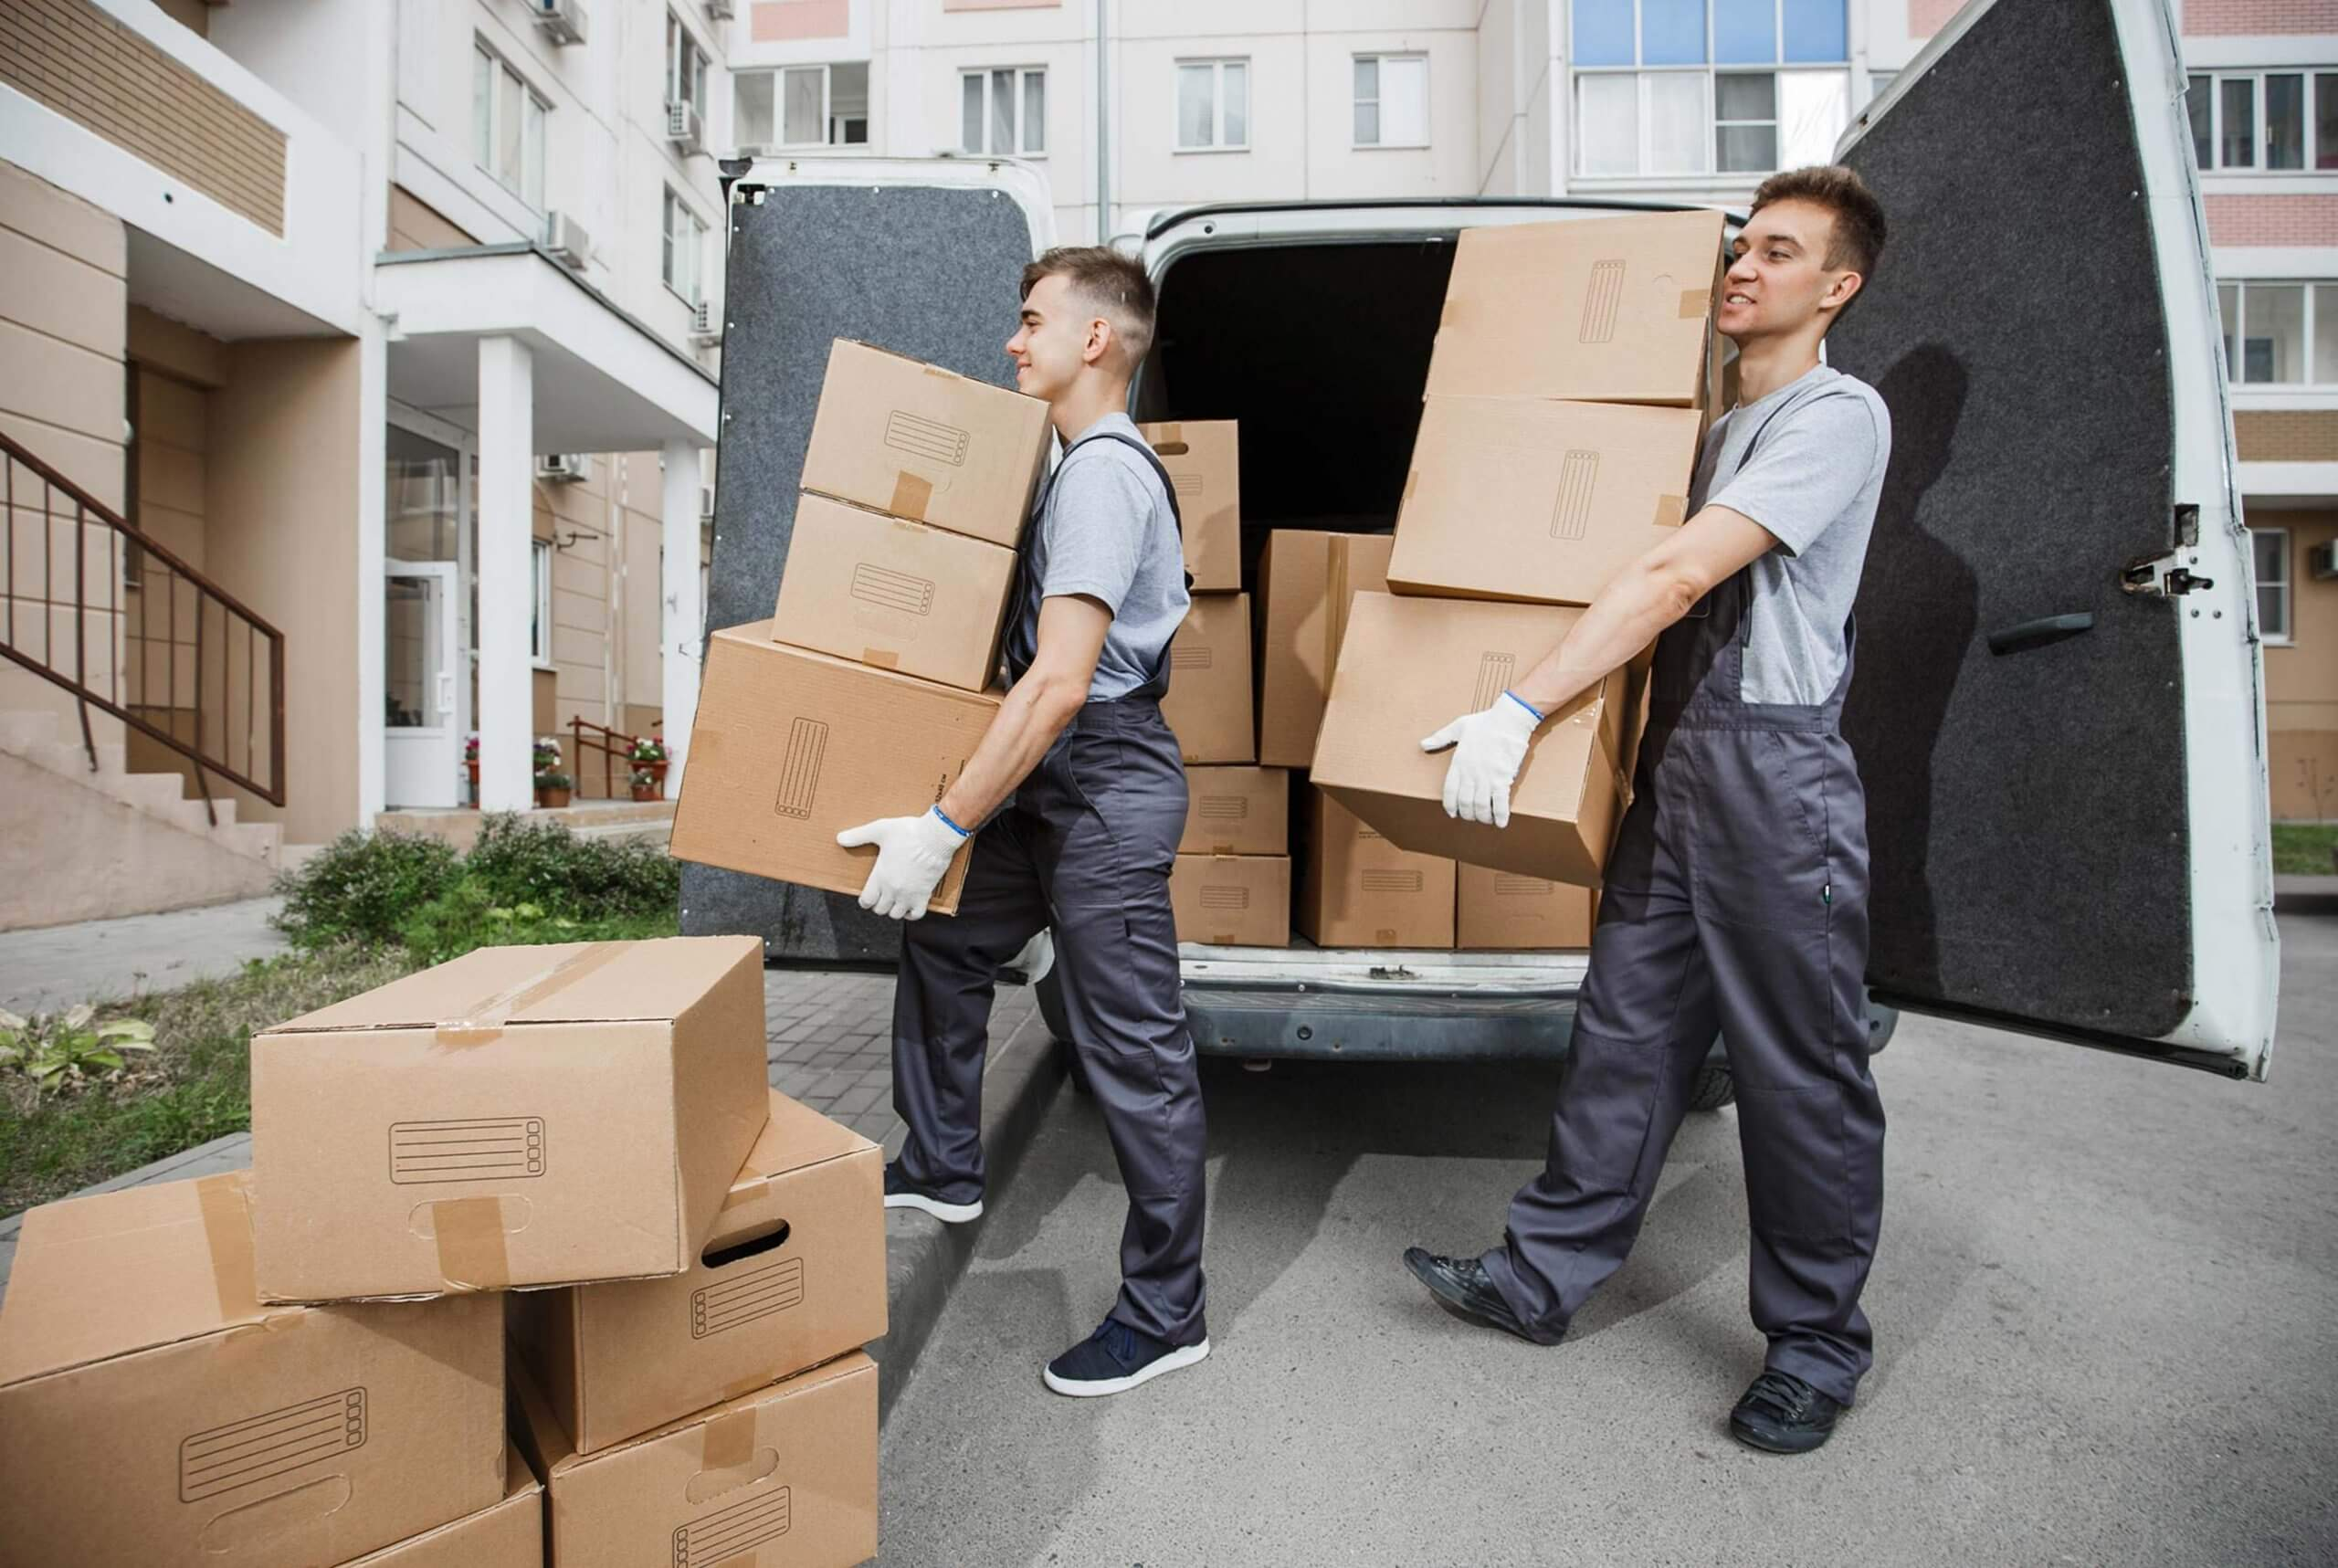 Services Senior Moving Experts arrange and supervise the moving van